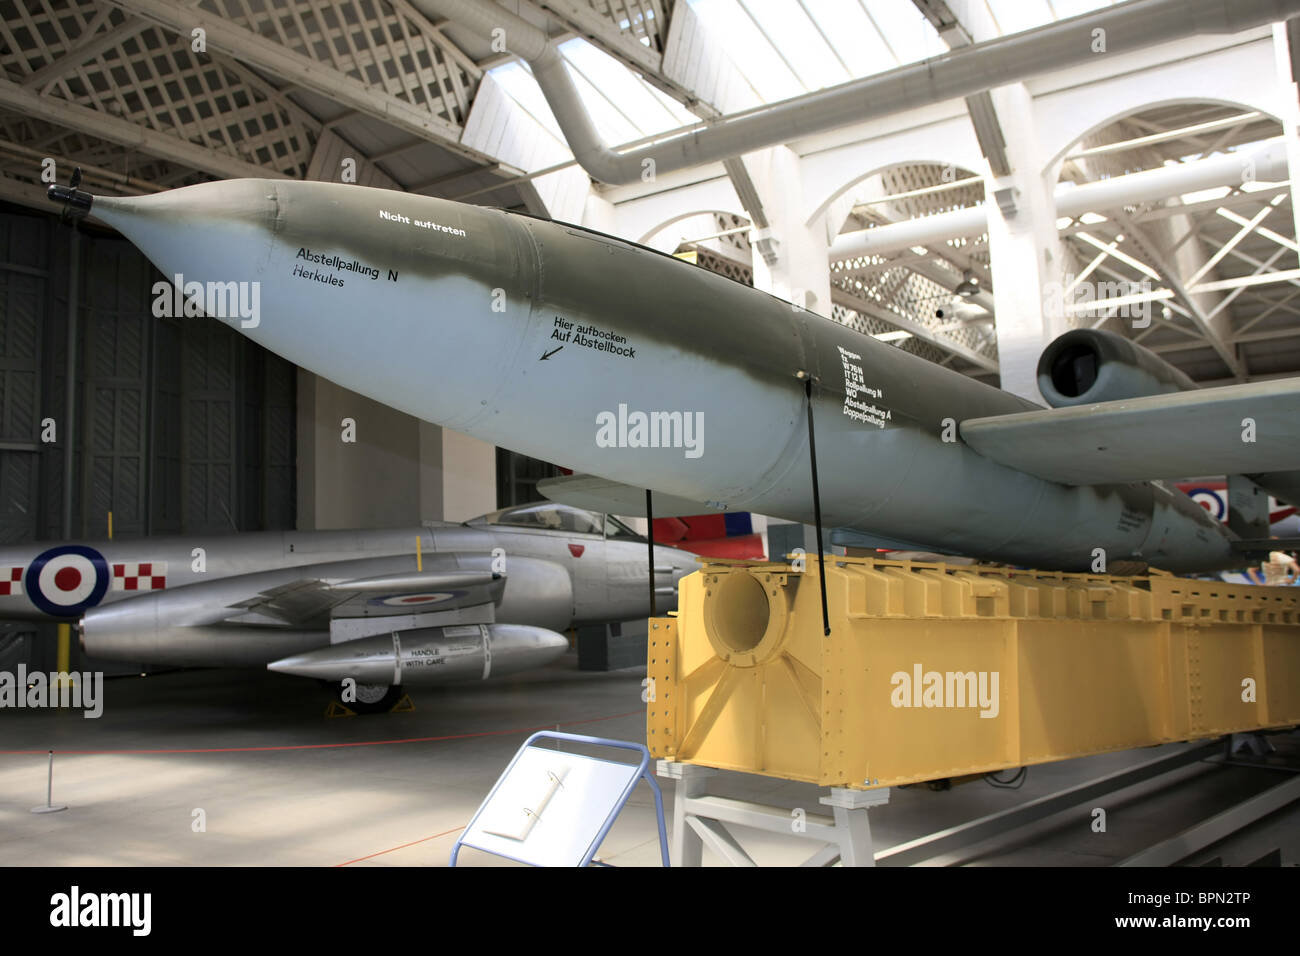 A German WW2 V1 Flying Bomb on display at the Imperial War Museum Stock Photo - Alamy